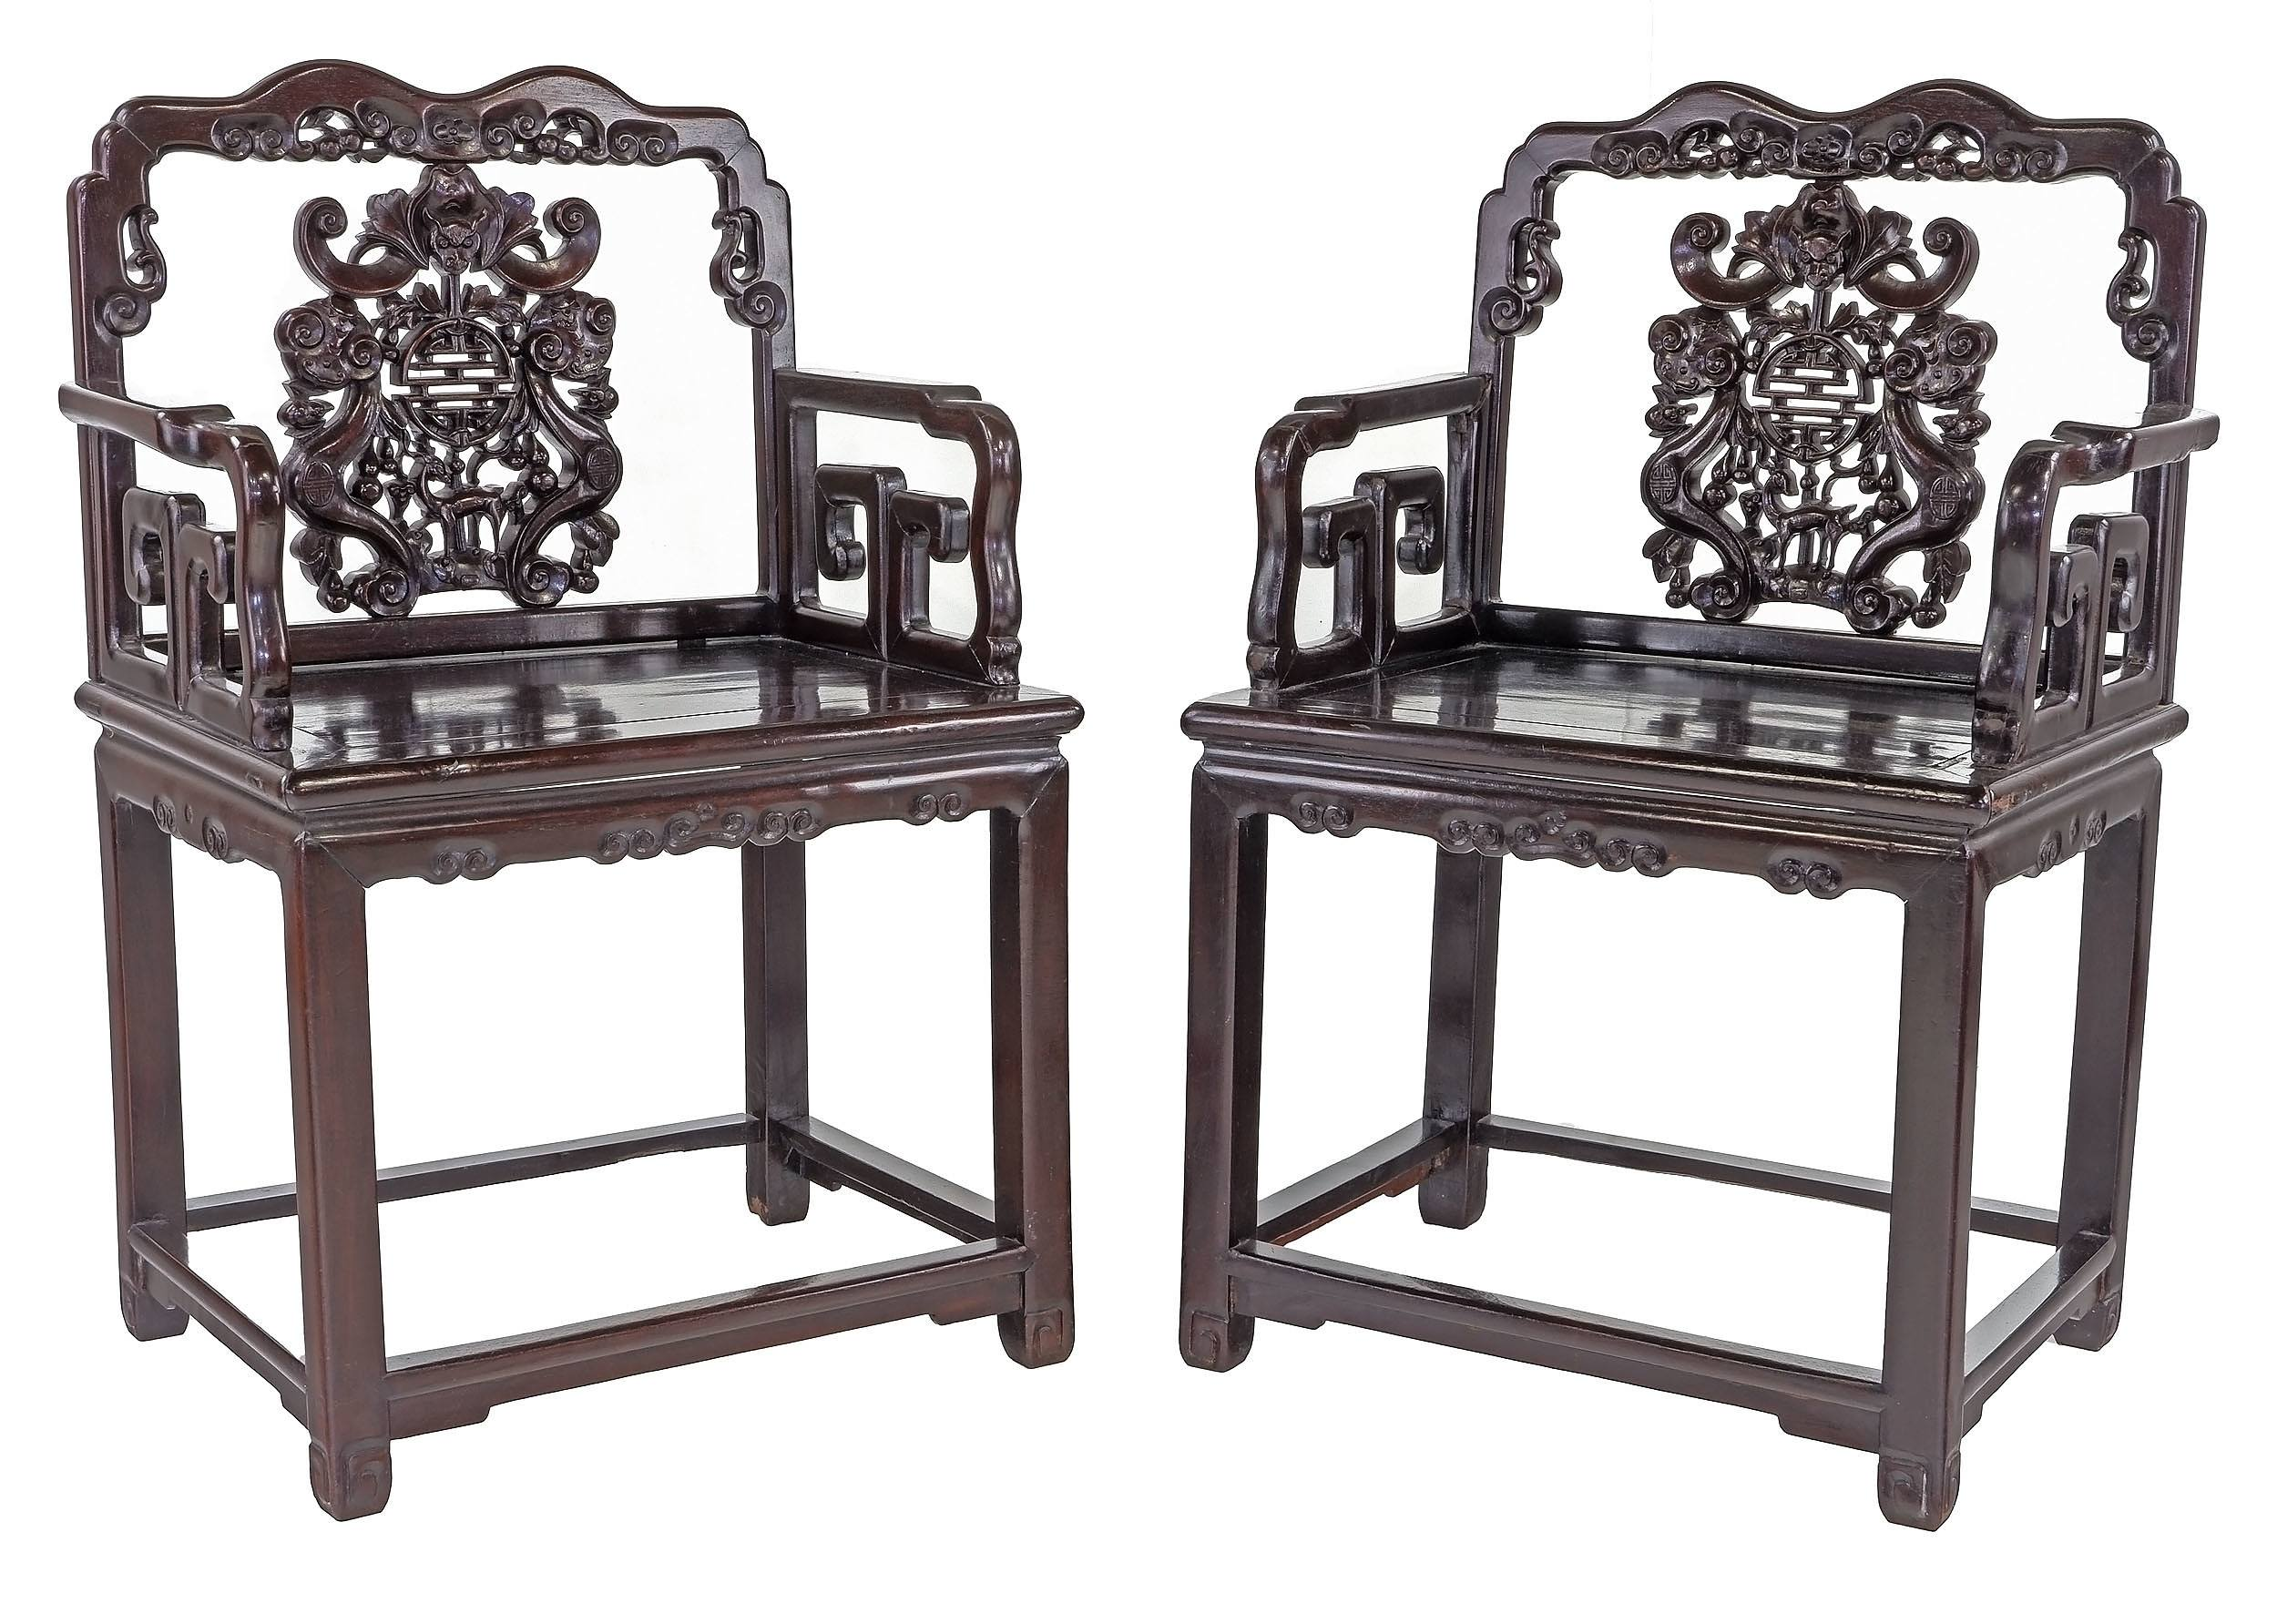 'Pair of Antique Chinese Stained Hardwood Armchairs Carved with Bats and Shou Symbols with Companion Side Table'